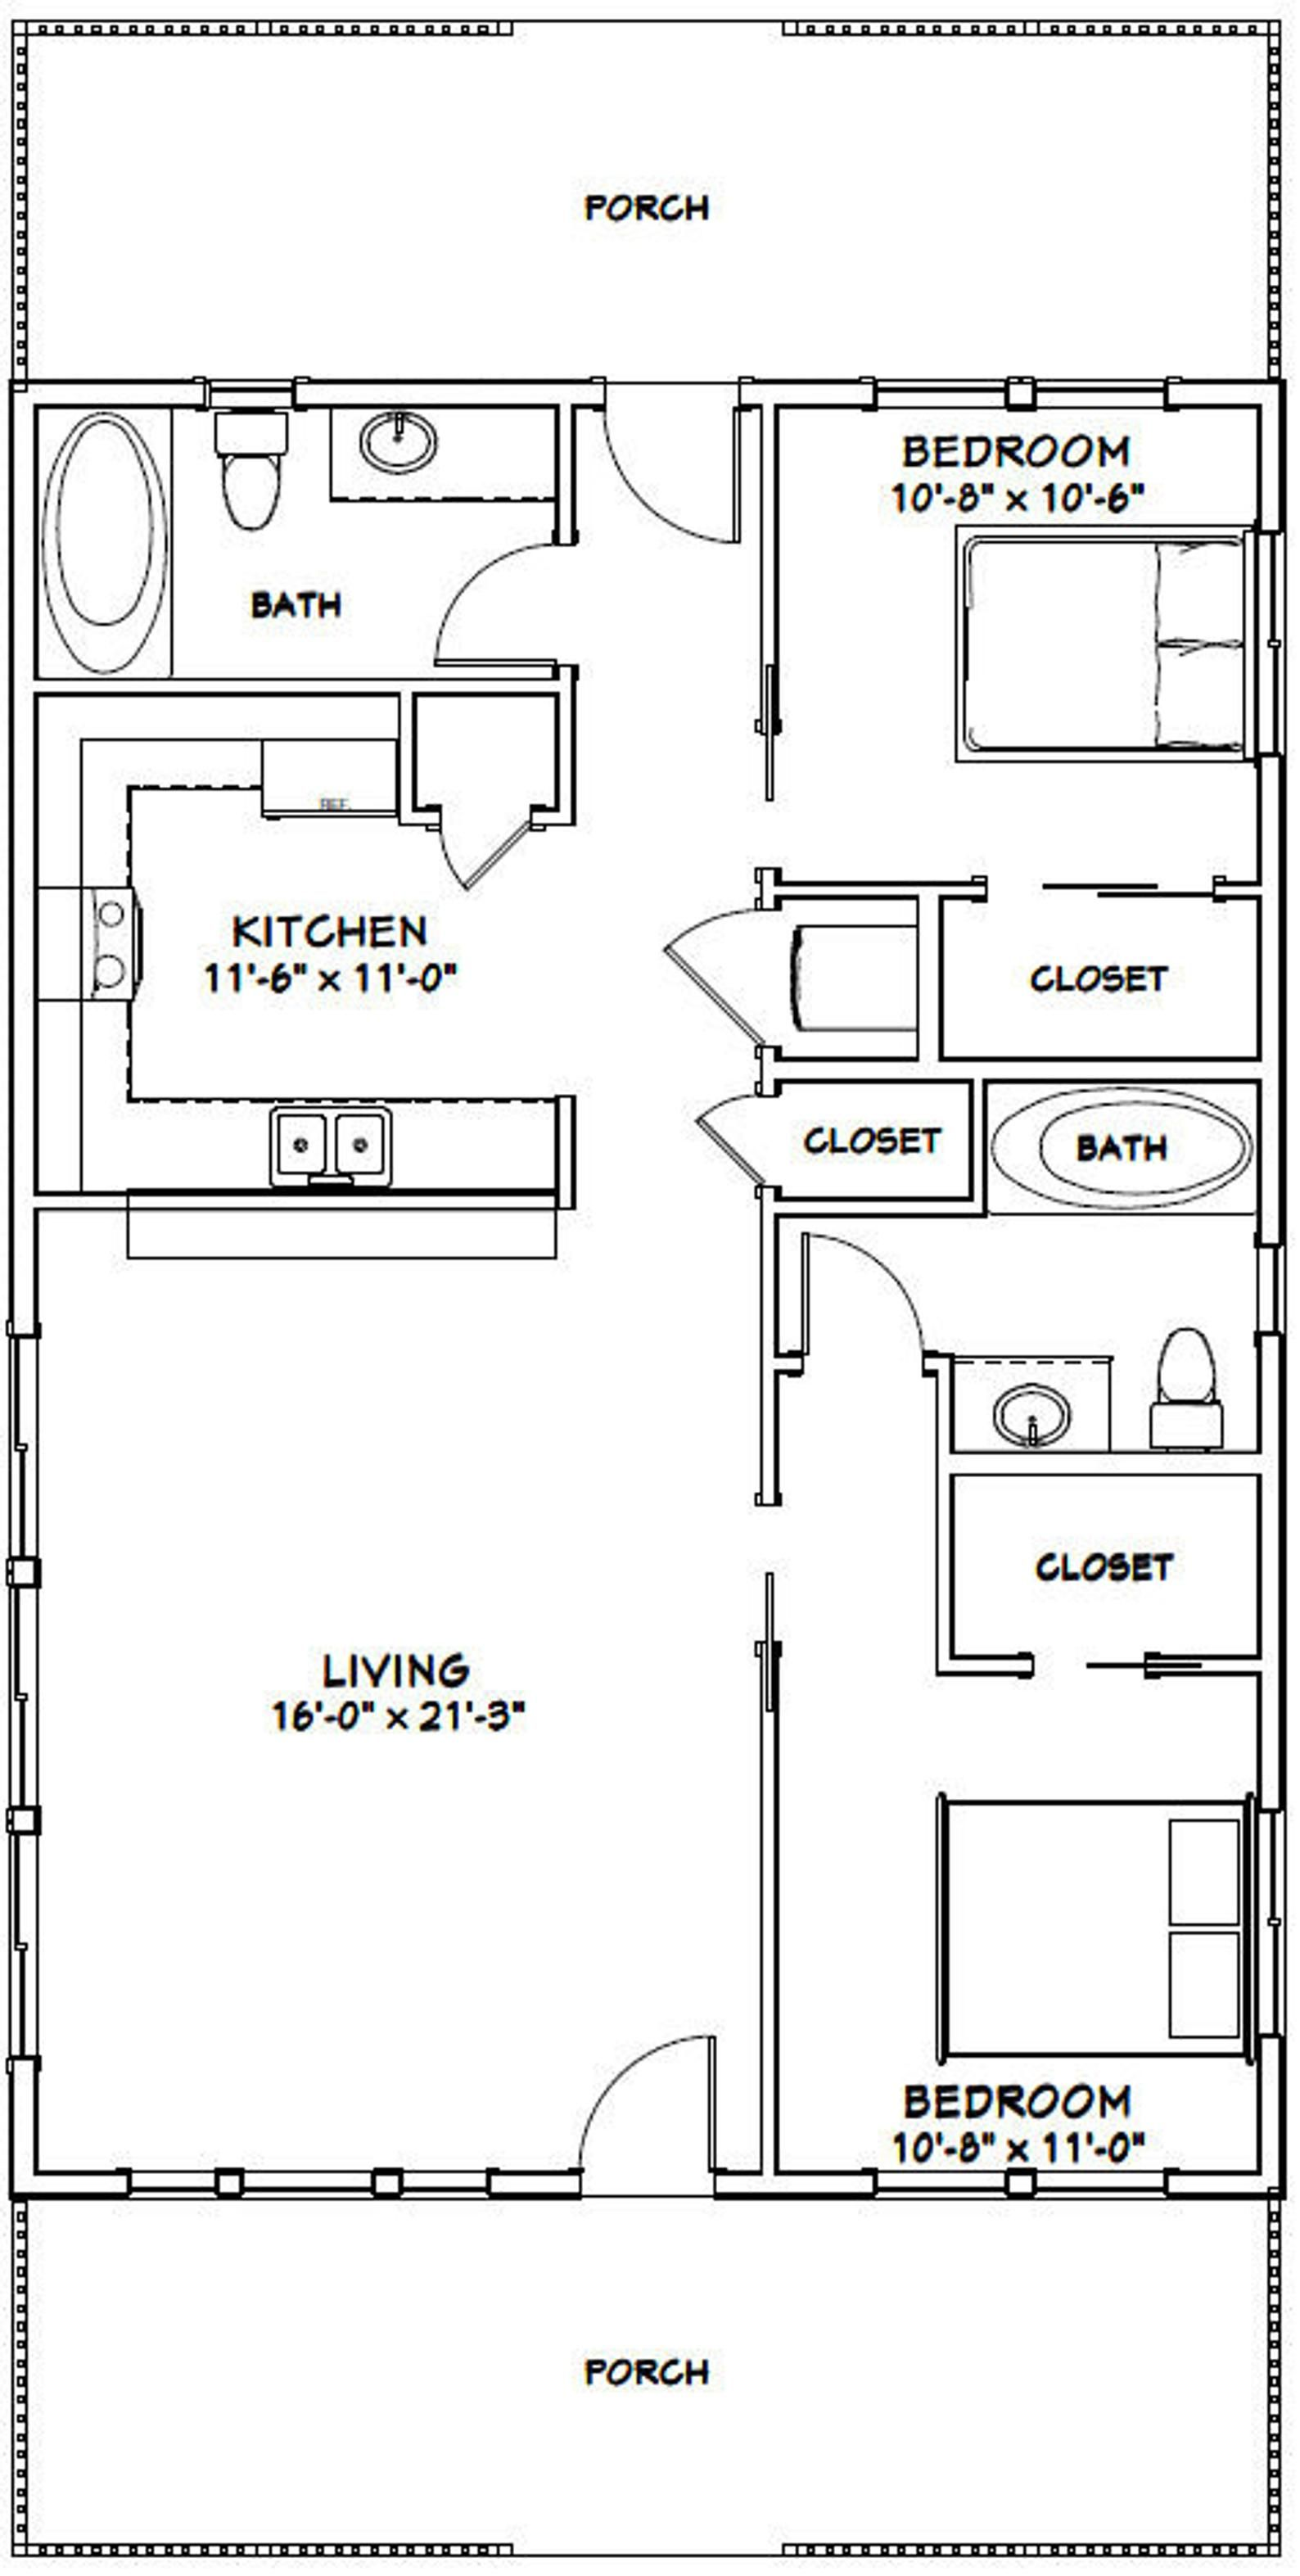 28x40 House 2 Bedroom 2 Bath 1 120 Sq Ft Pdf Floor Plan Instant Download Model 1a Tiny House Floor Plans Small House Floor Plans Barndominium Floor Plans